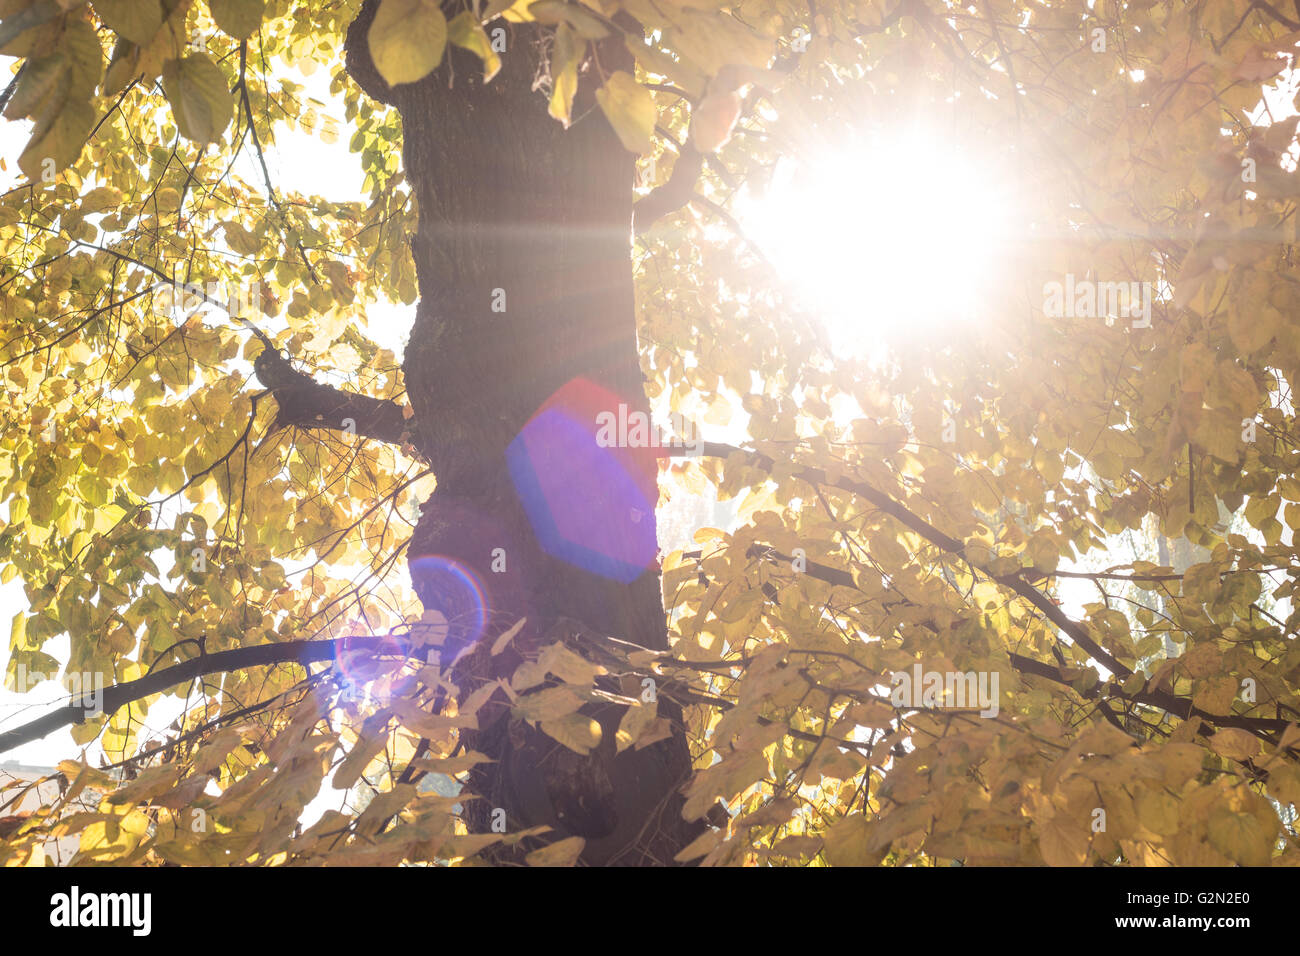 Autumn scenery with the sun warmly shining through the gold leaves of a beech tree - Stock Image